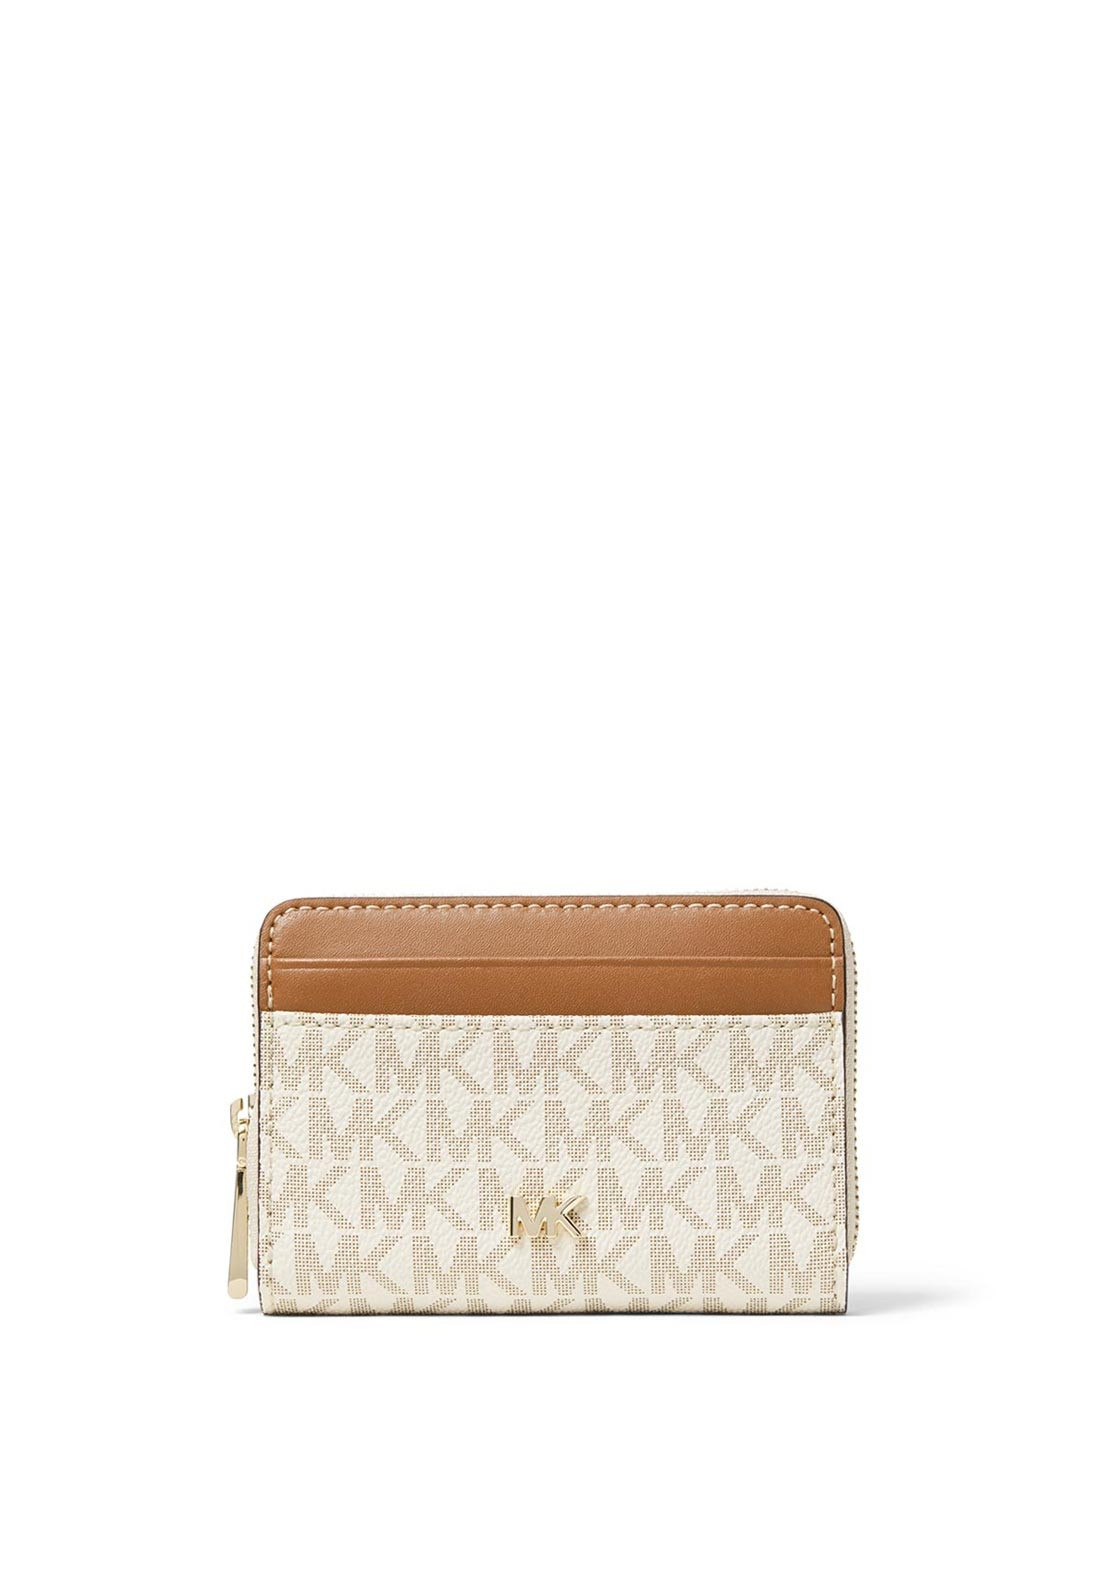 5c3bf544c1c1 MICHAEL Michael Kors Money Pieces Mini Wallet, Vanilla. Be the first to  review this product